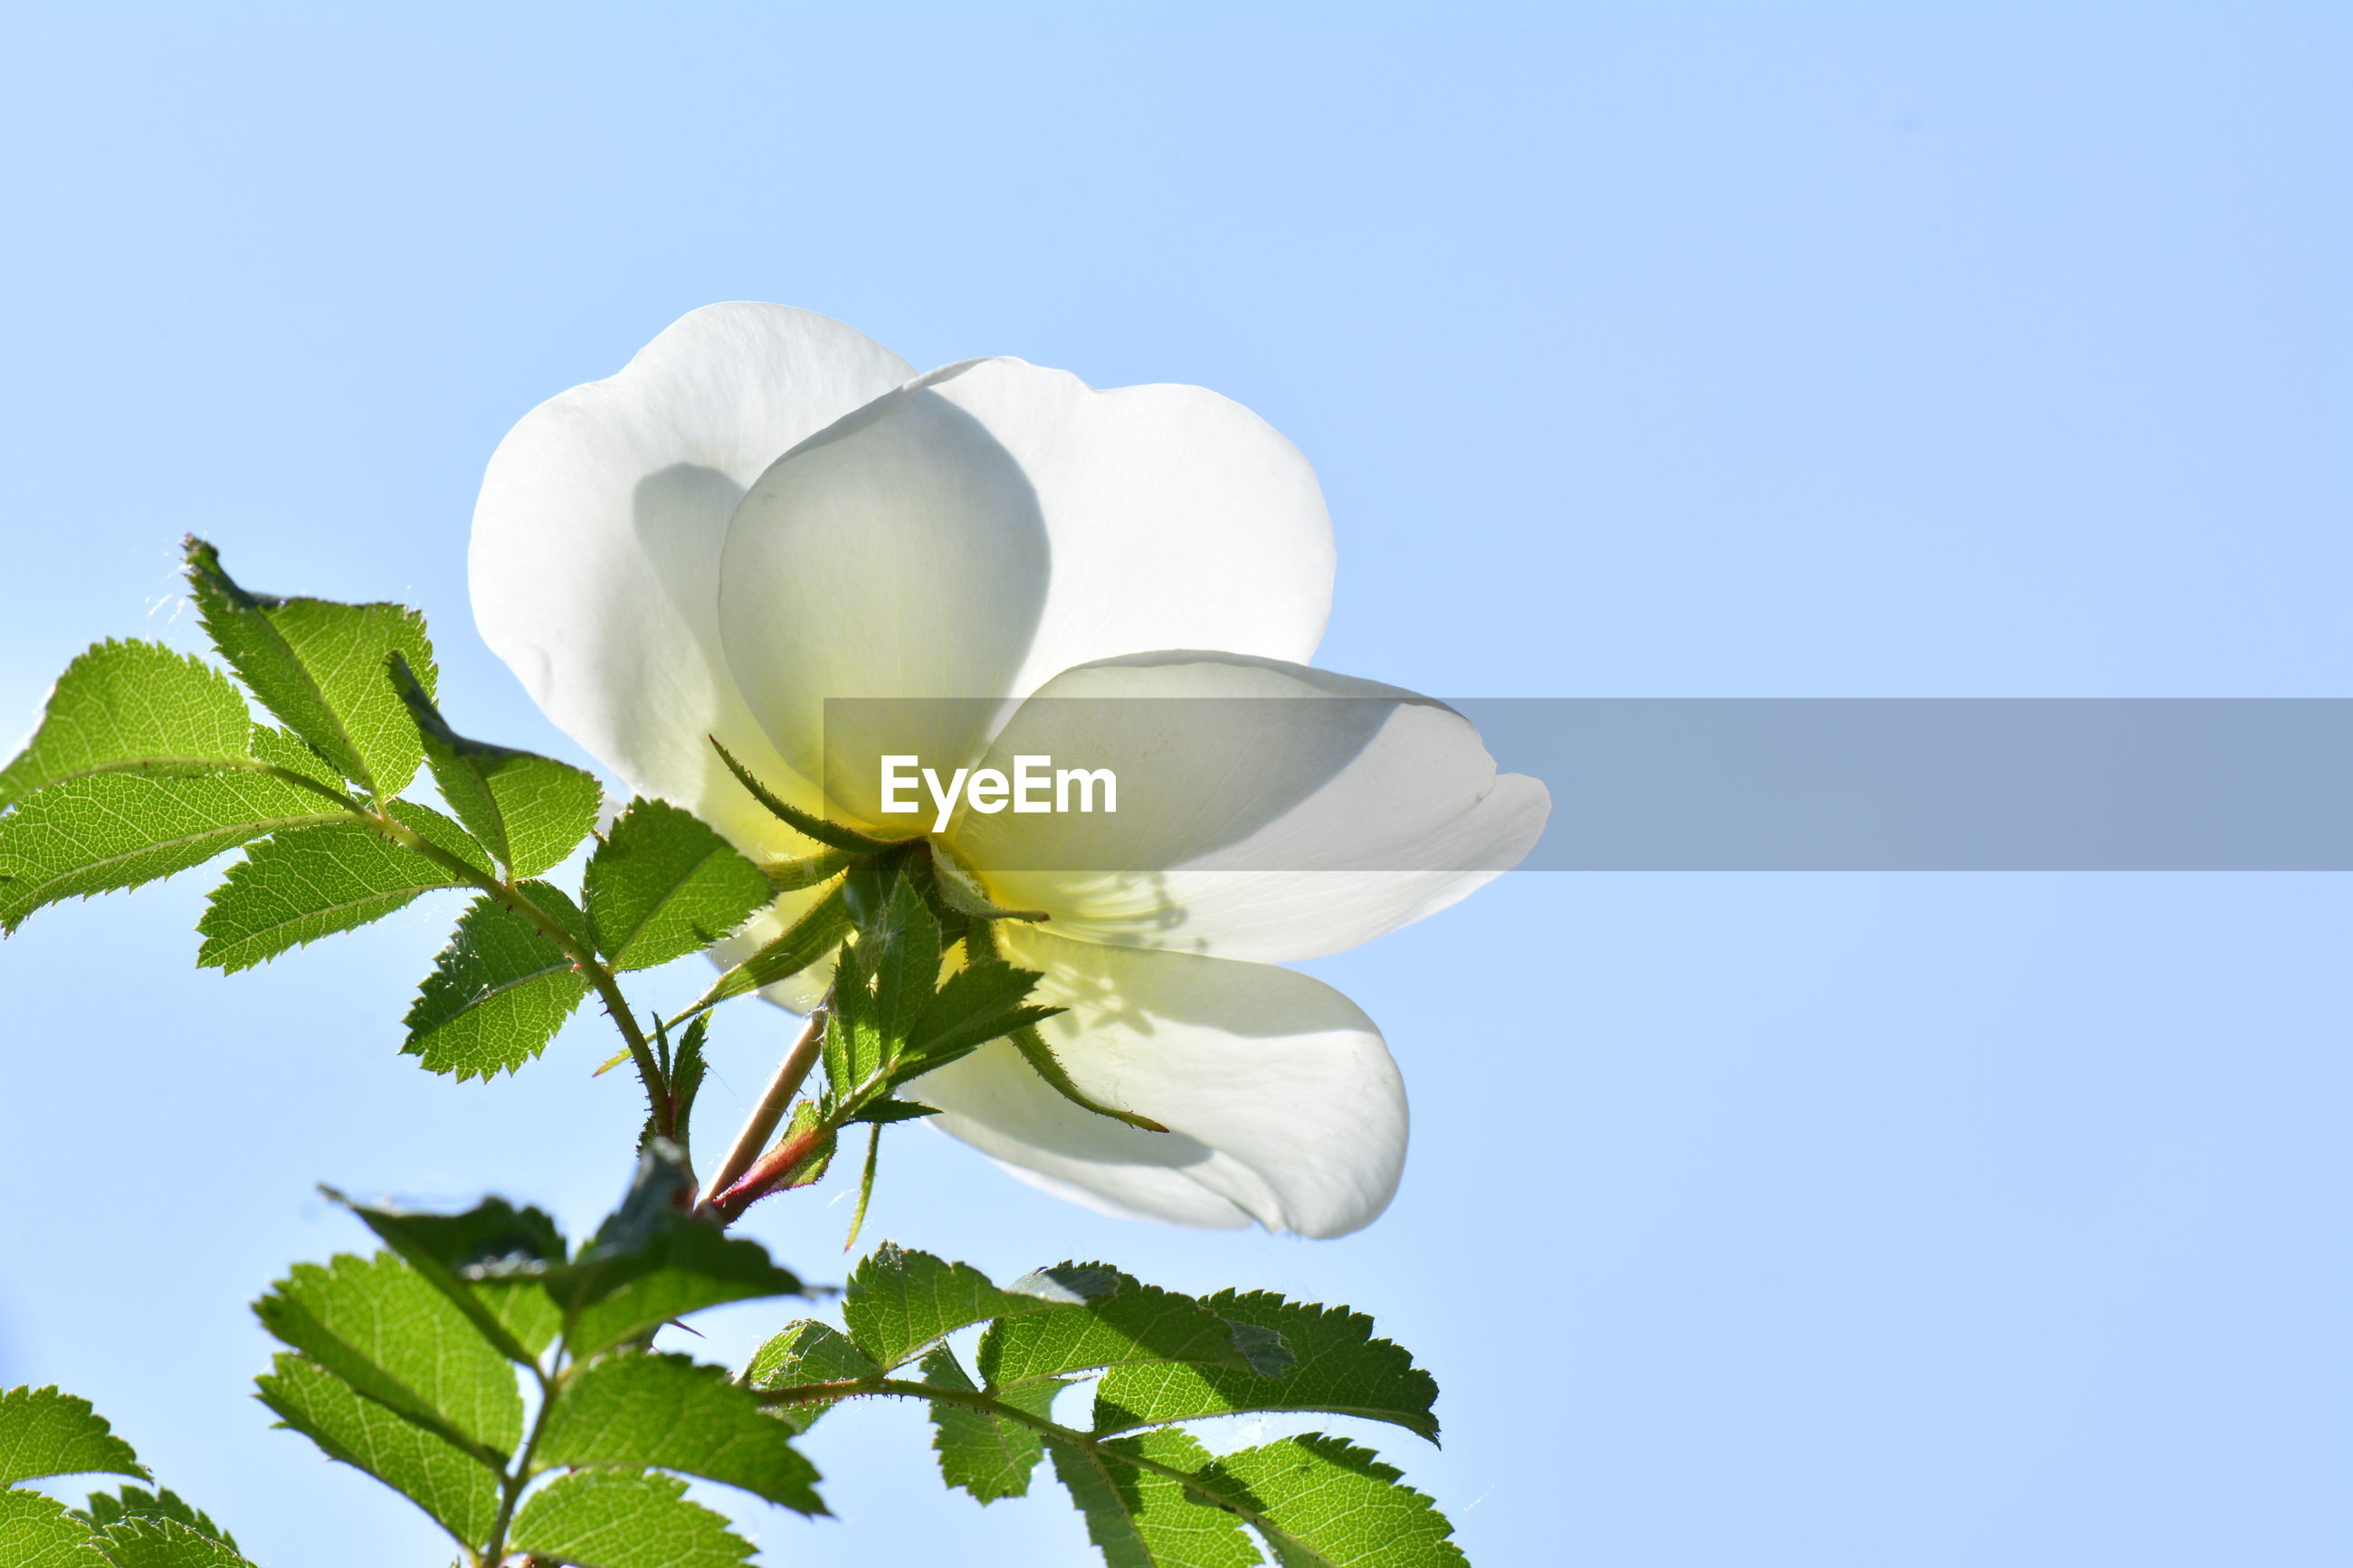 LOW ANGLE VIEW OF WHITE FLOWERING PLANTS AGAINST CLEAR SKY